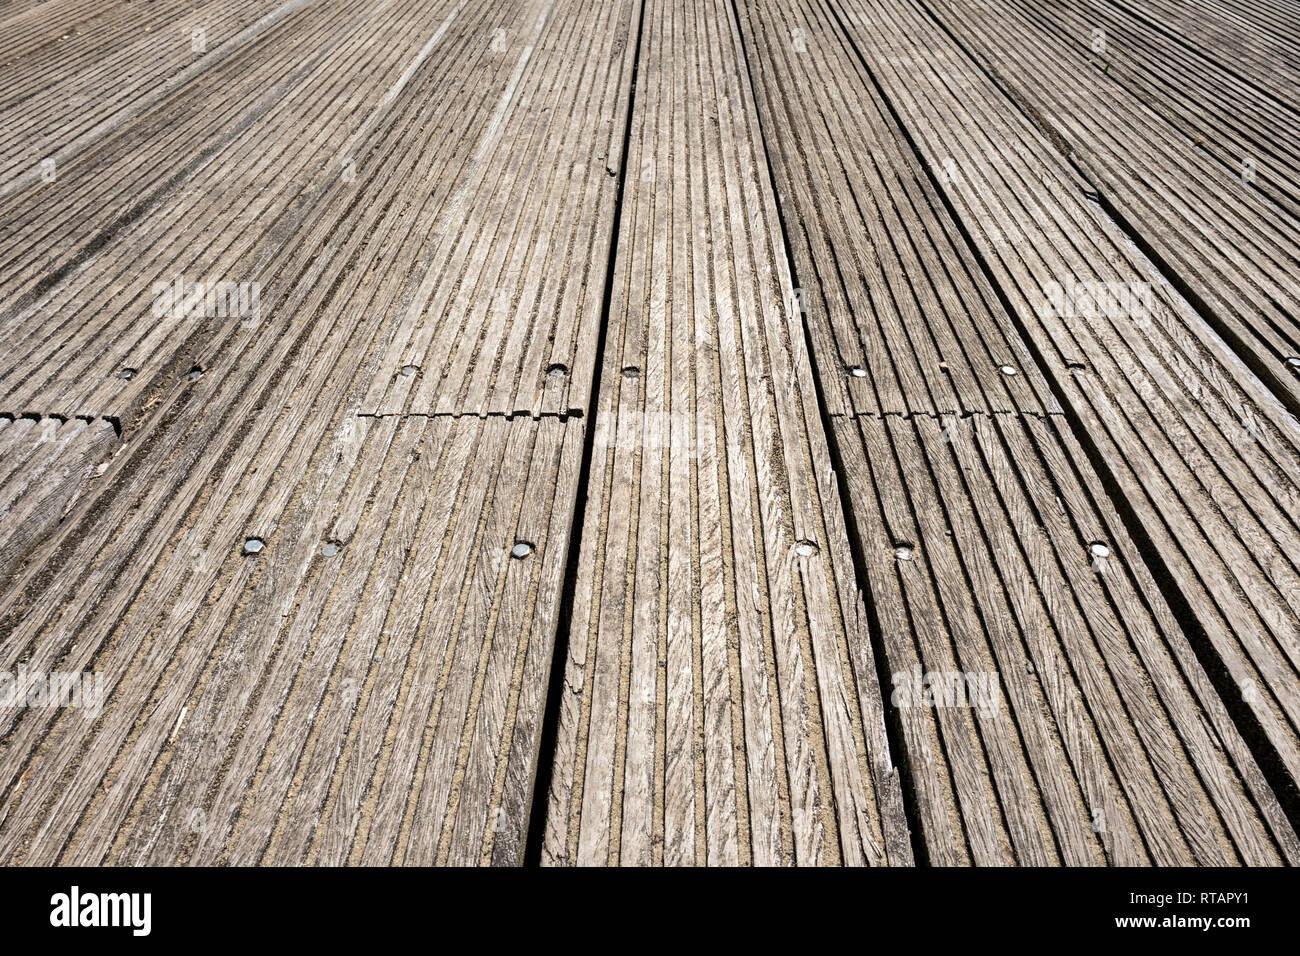 wooden floor planks for background use - Stock Image